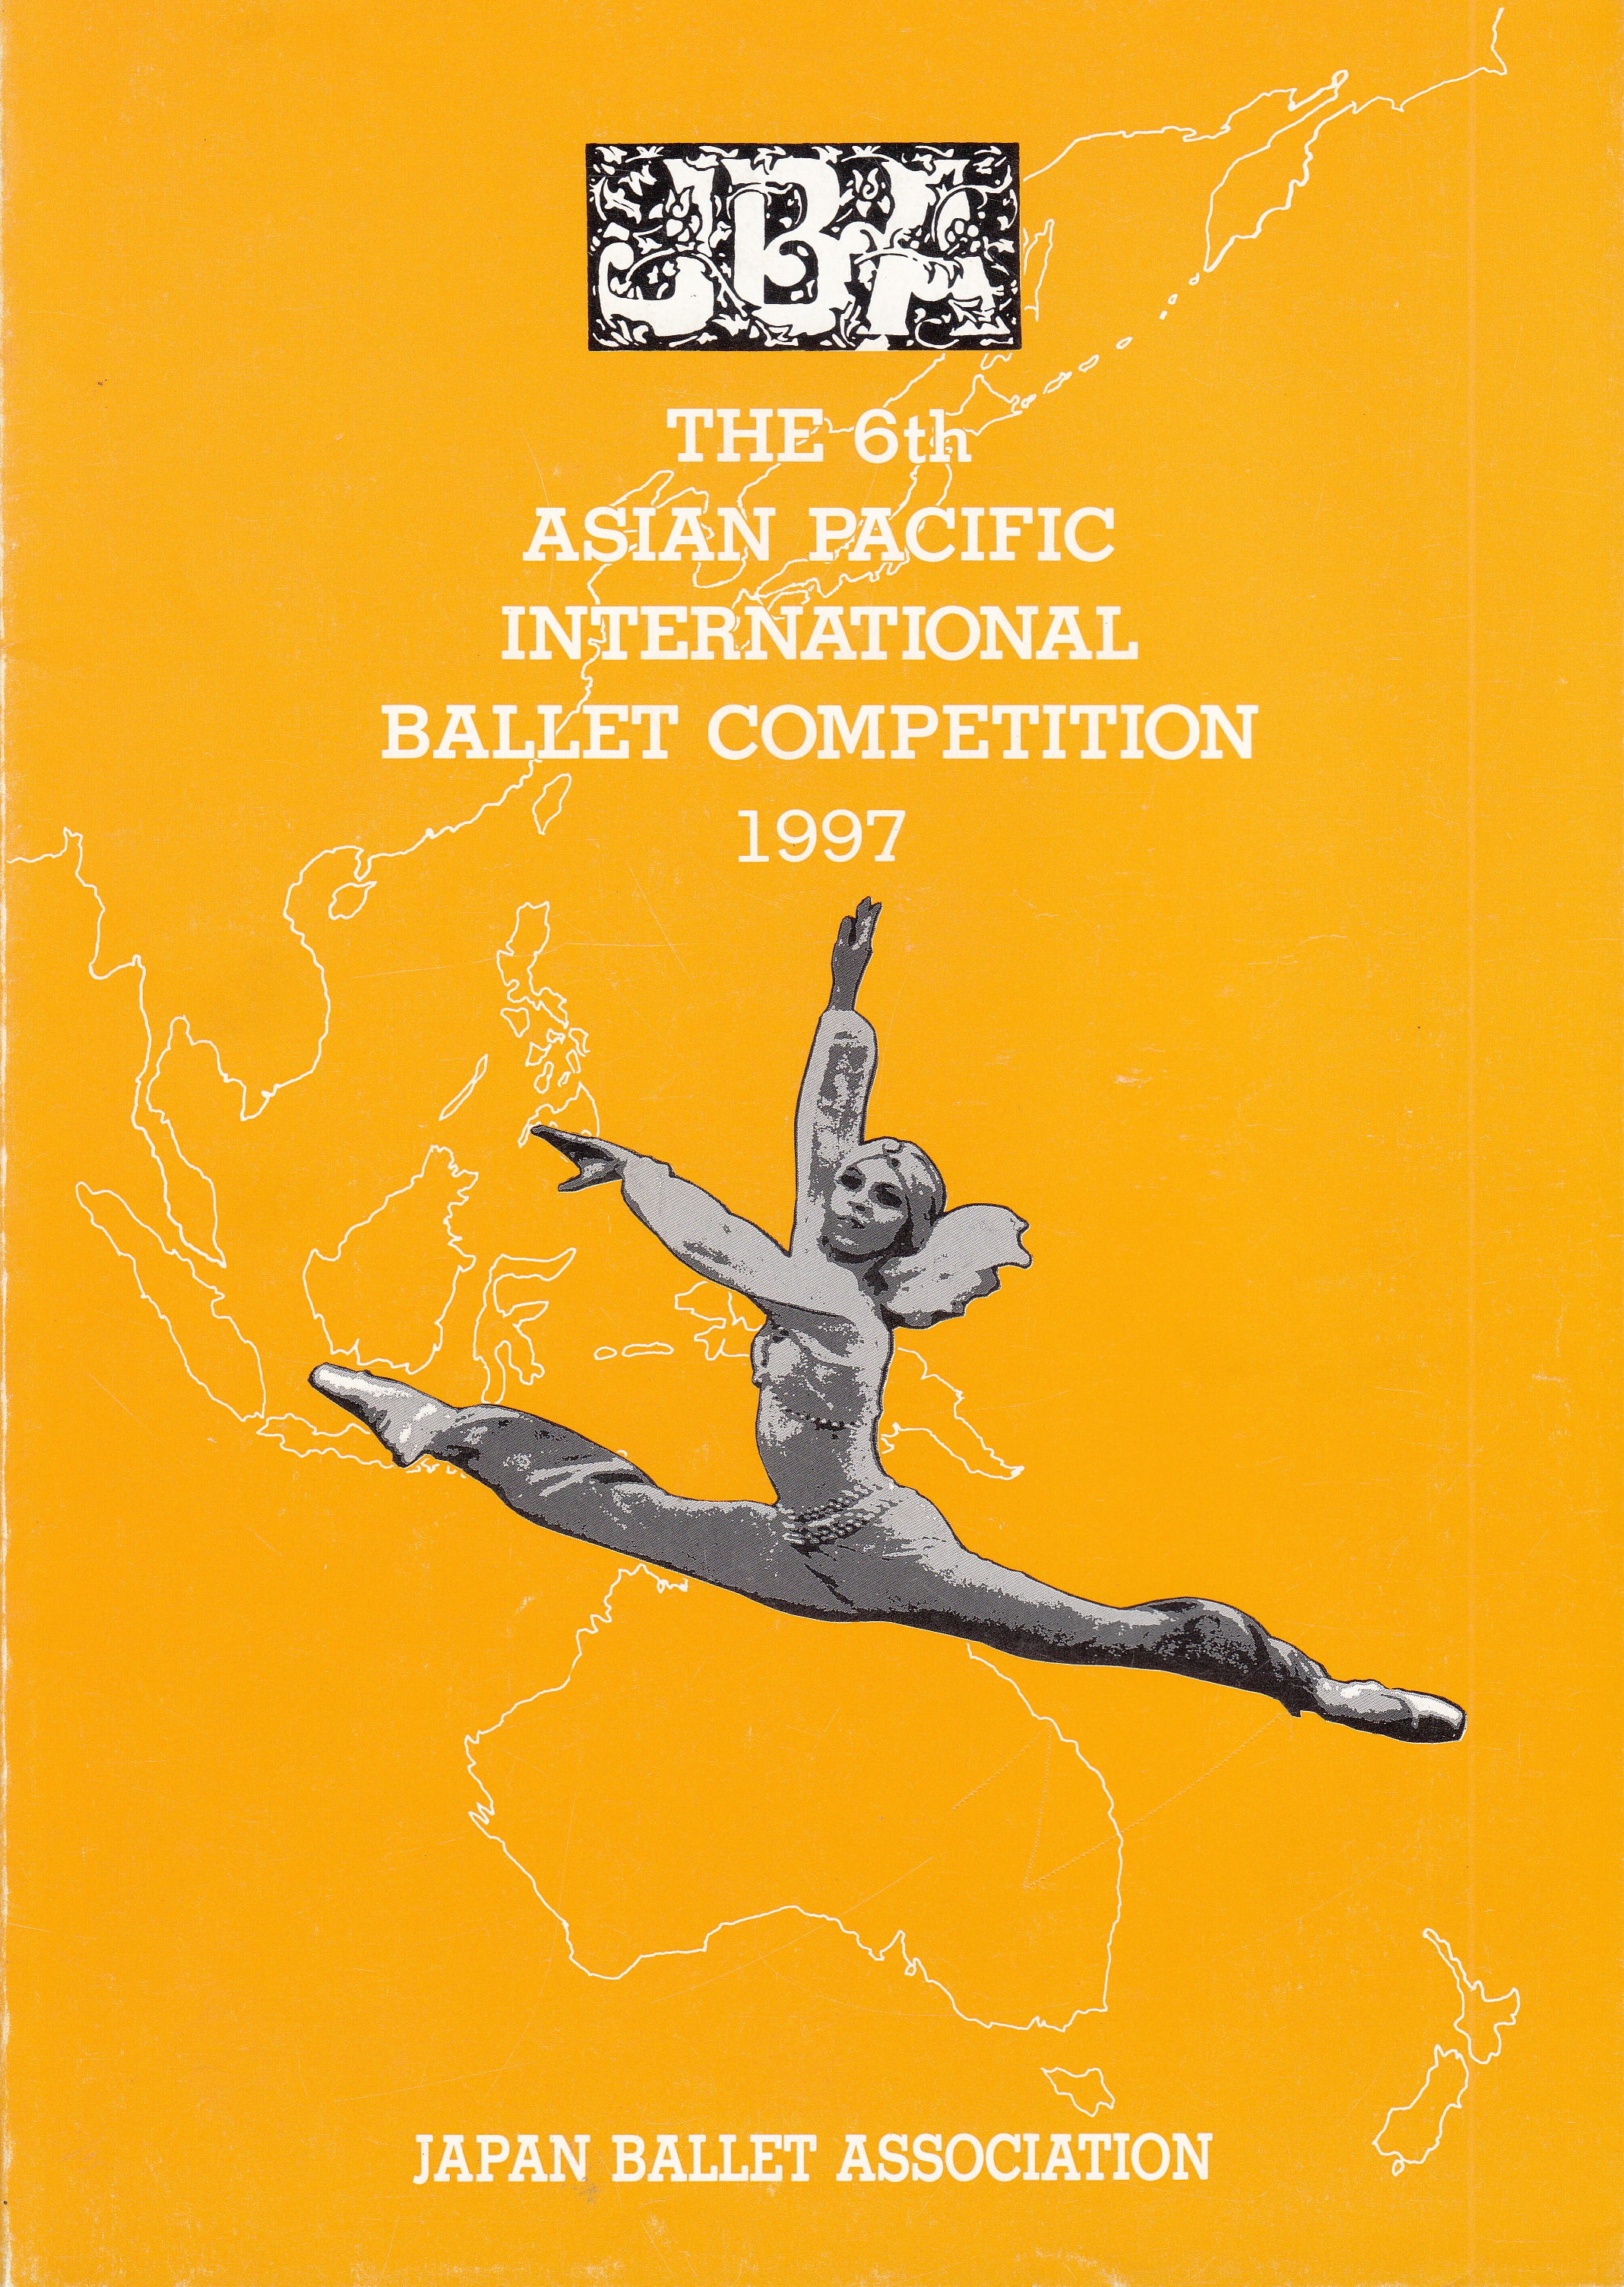 HILDA: Asian pacific international ballet competition